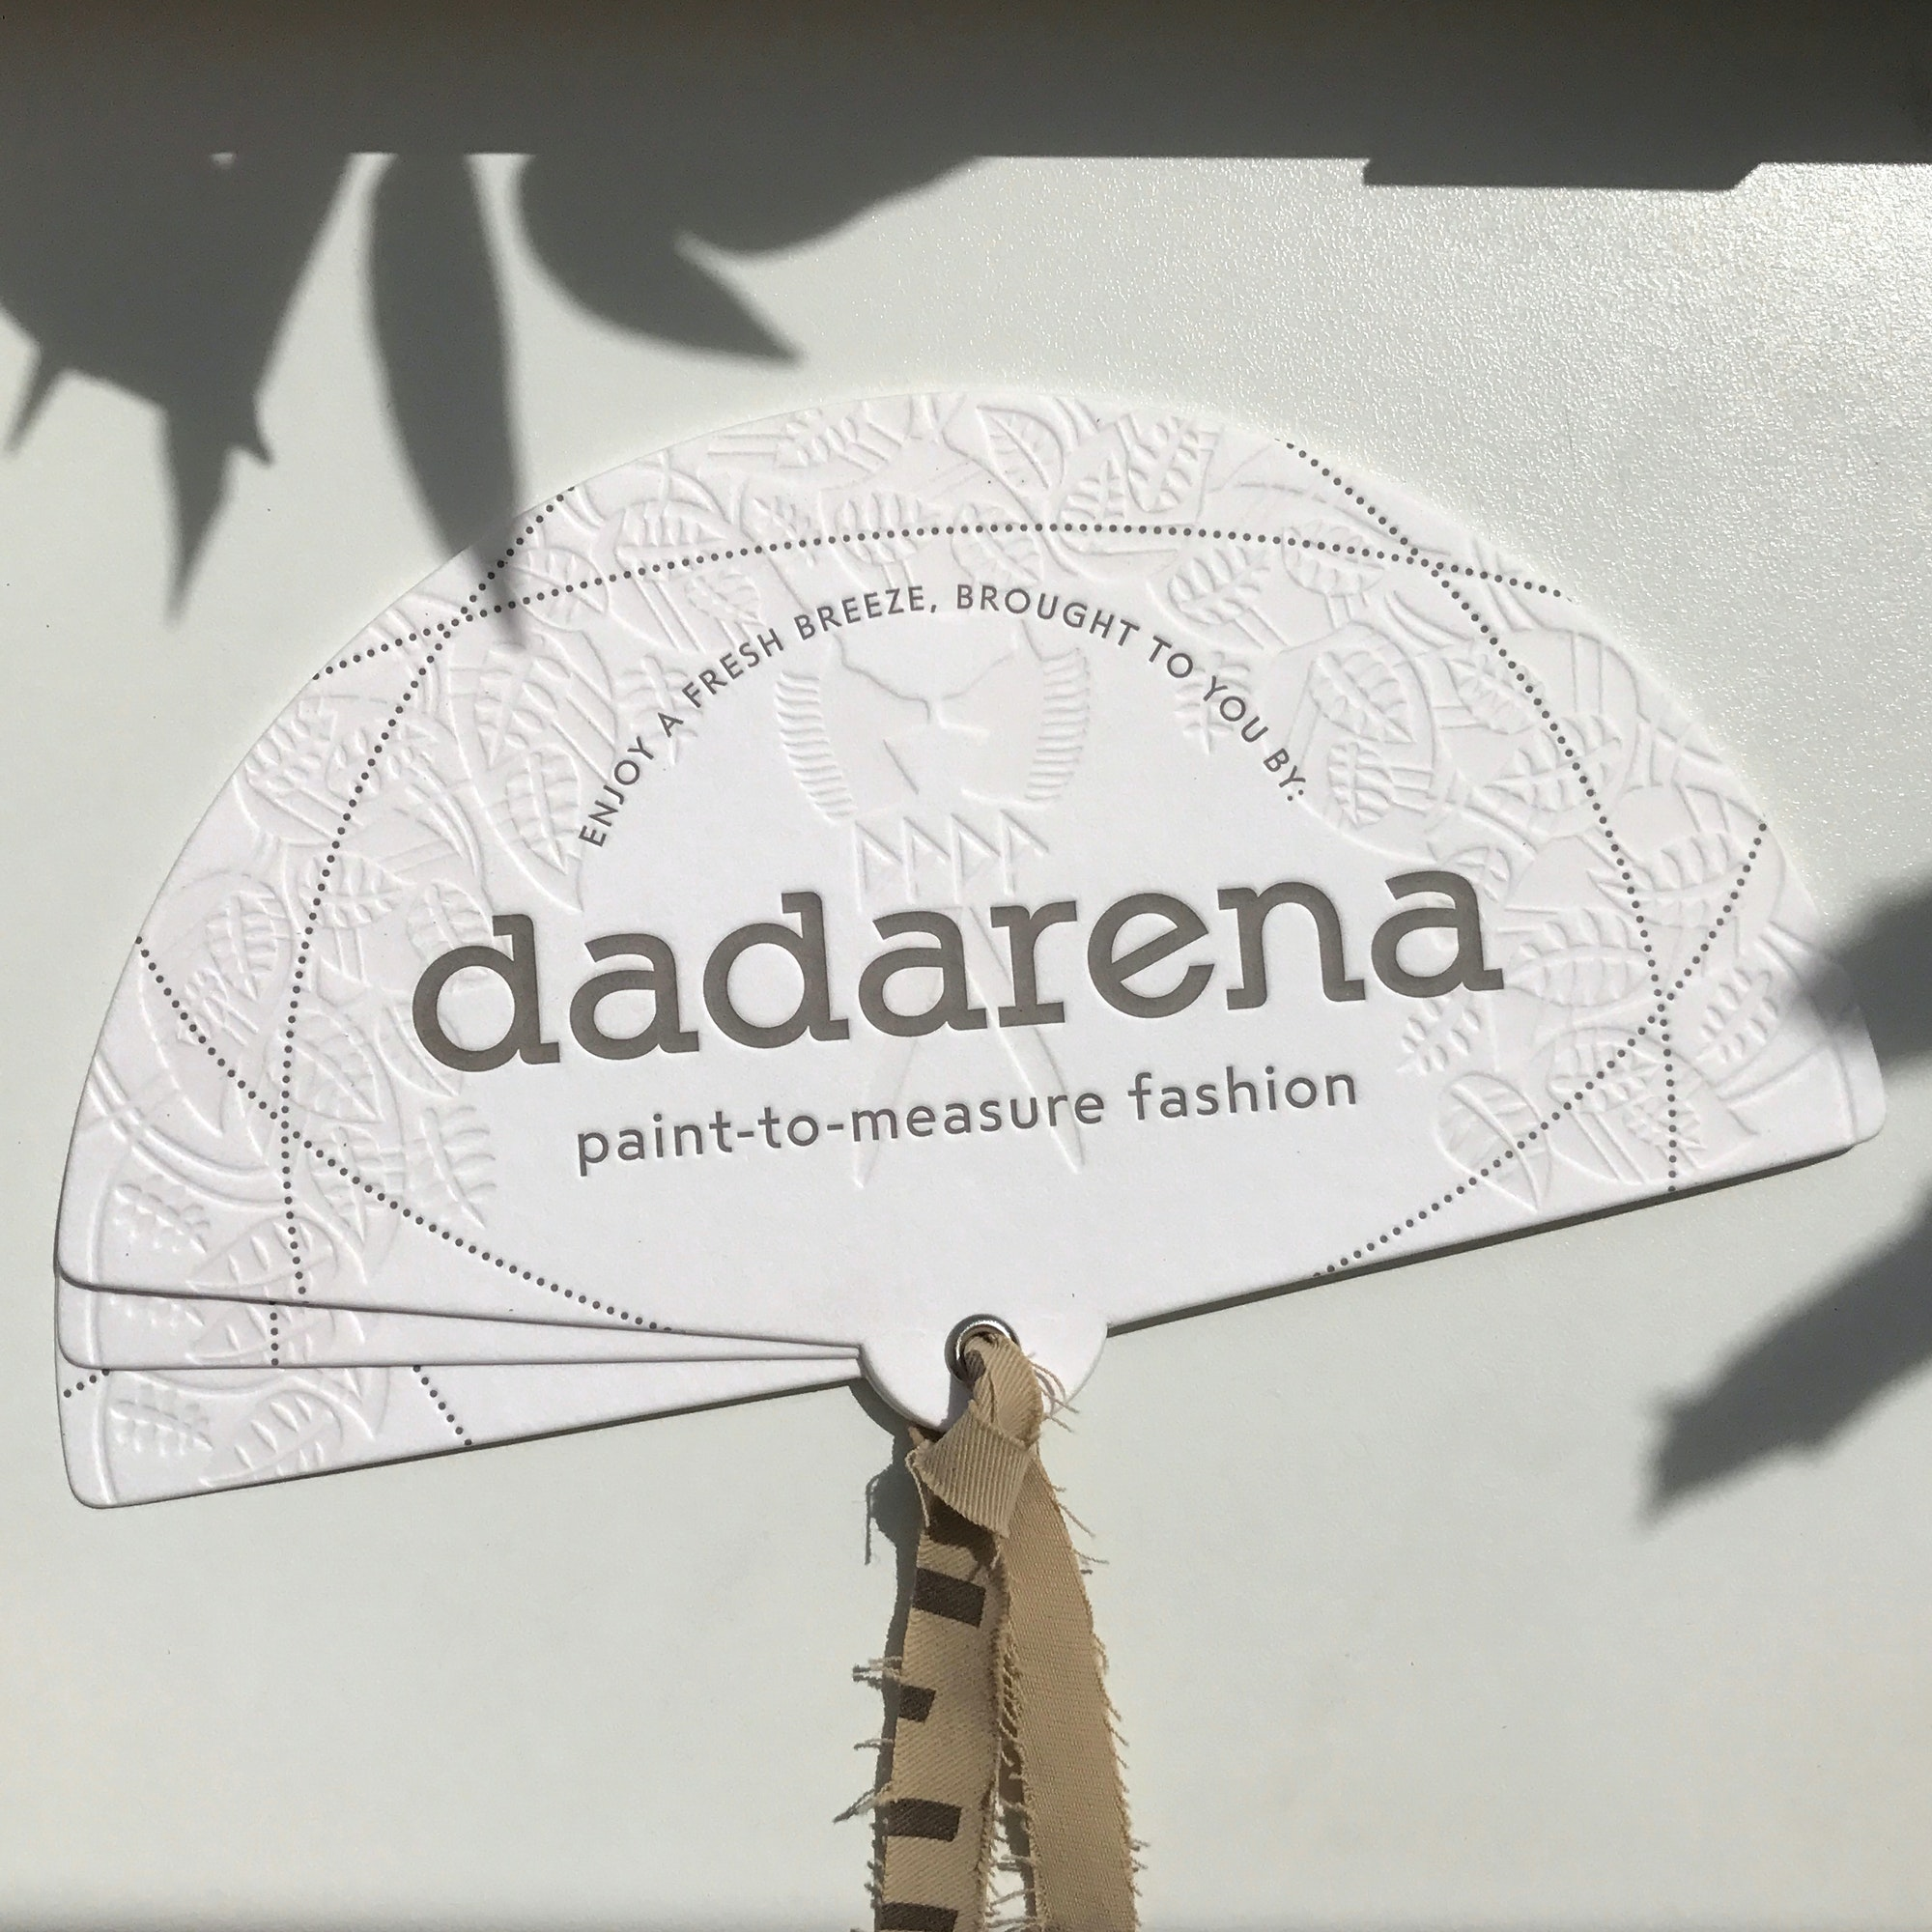 CI design for dadarena